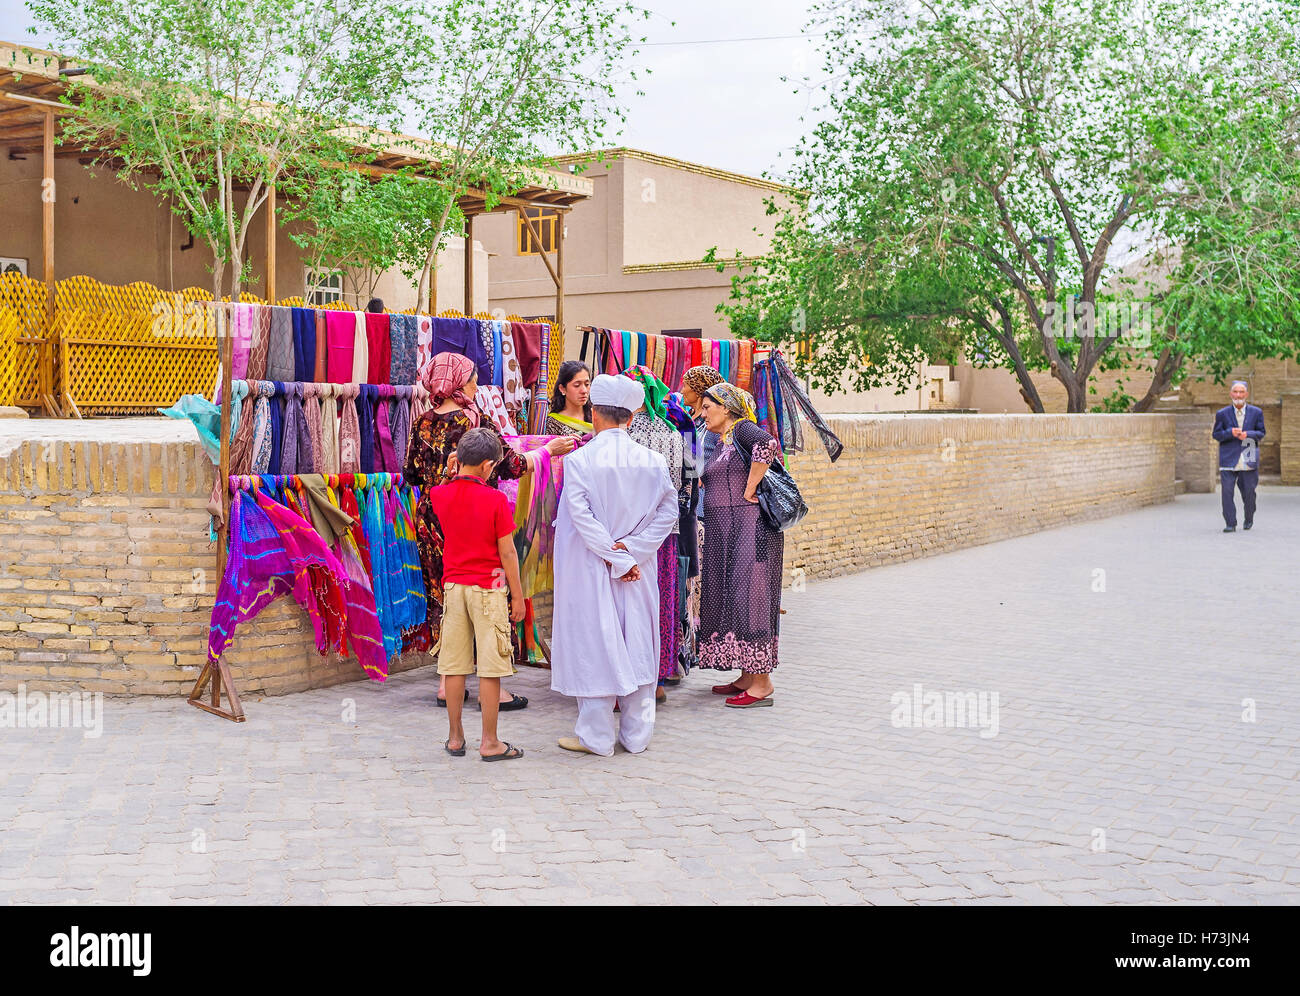 The members of Uzbek family in traditional costumes choose the headclothes at the market stall - Stock Image